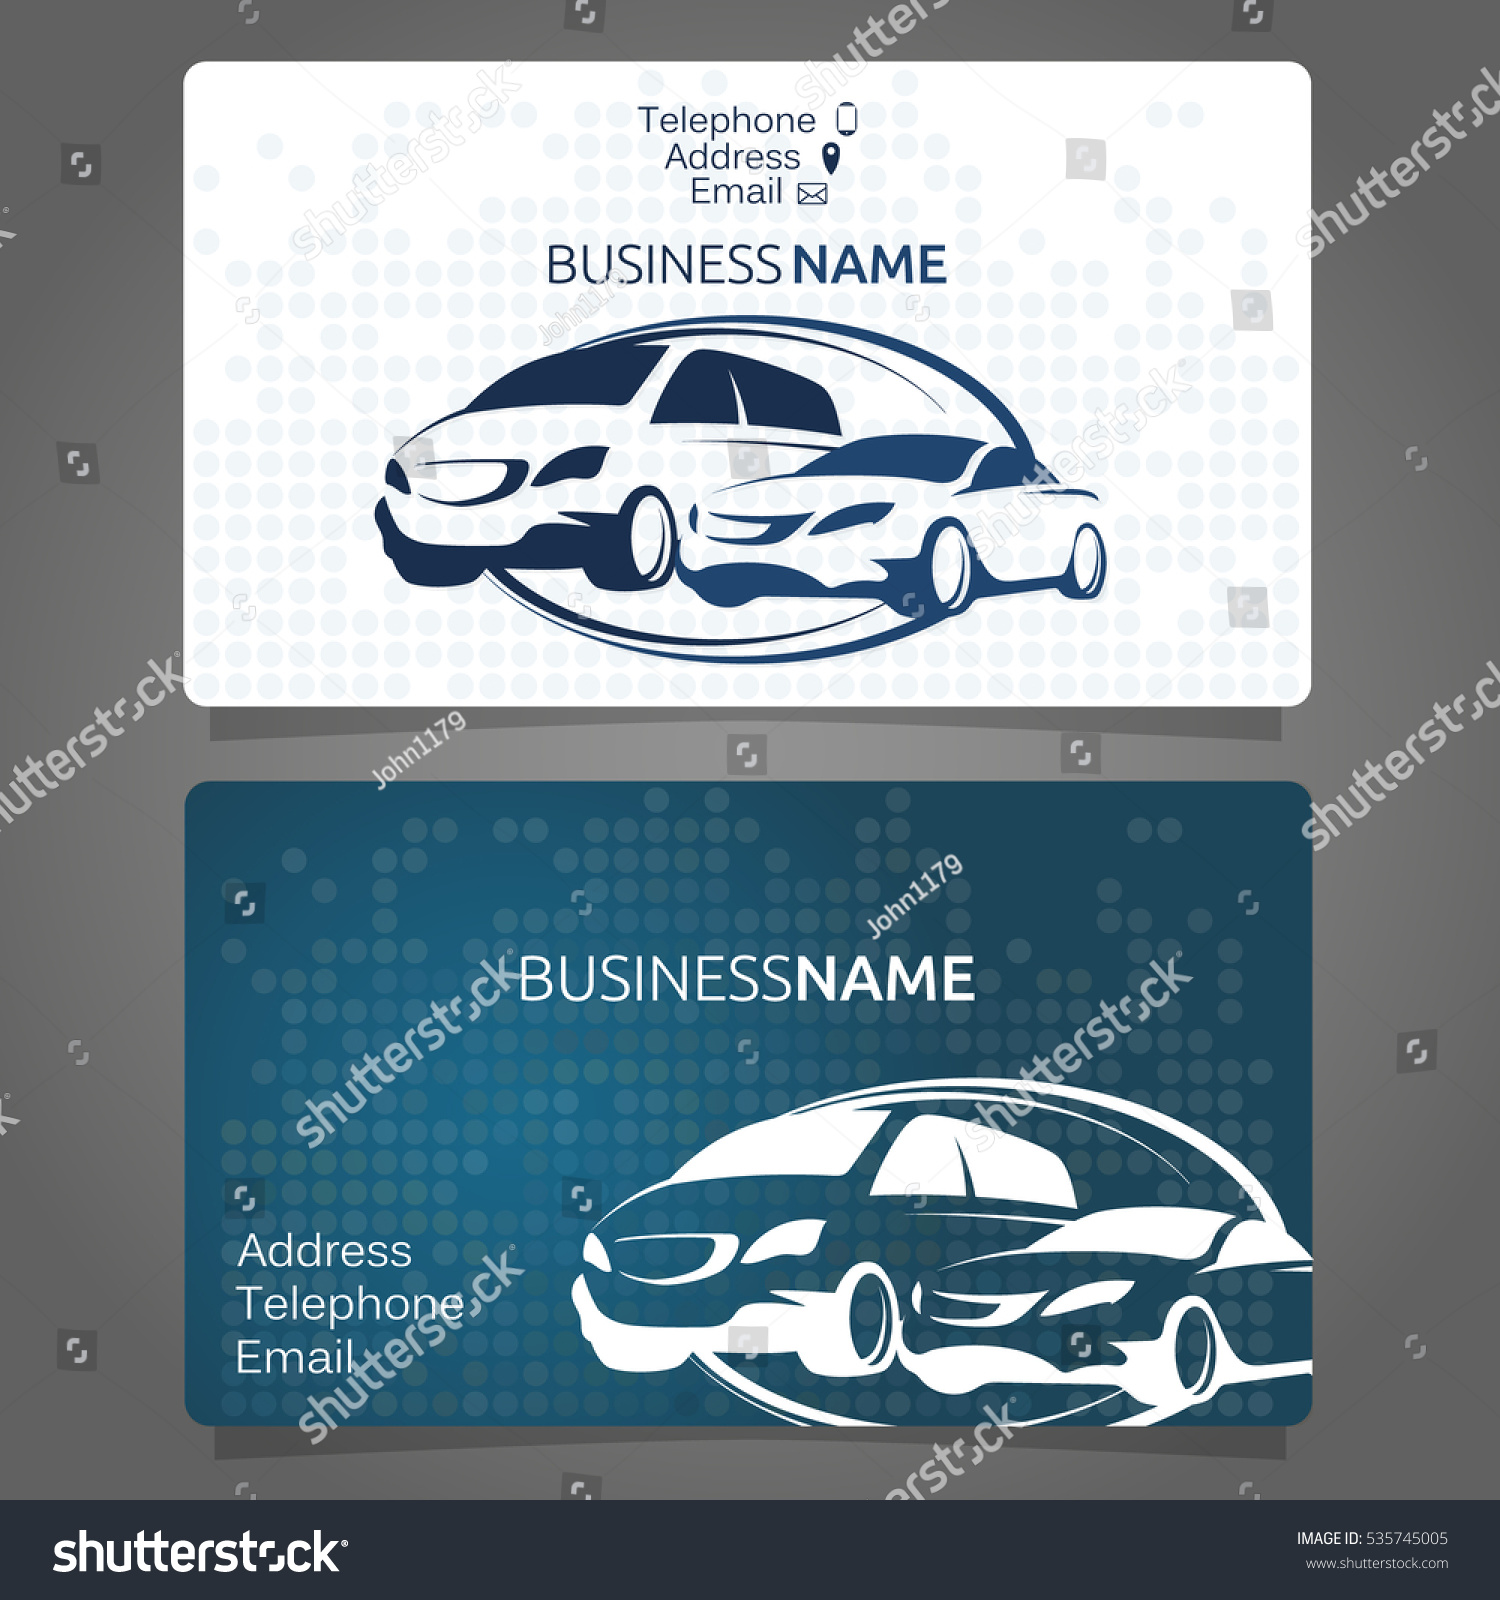 Car rental business card company stock vector 535745005 shutterstock car rental business card for the company magicingreecefo Gallery